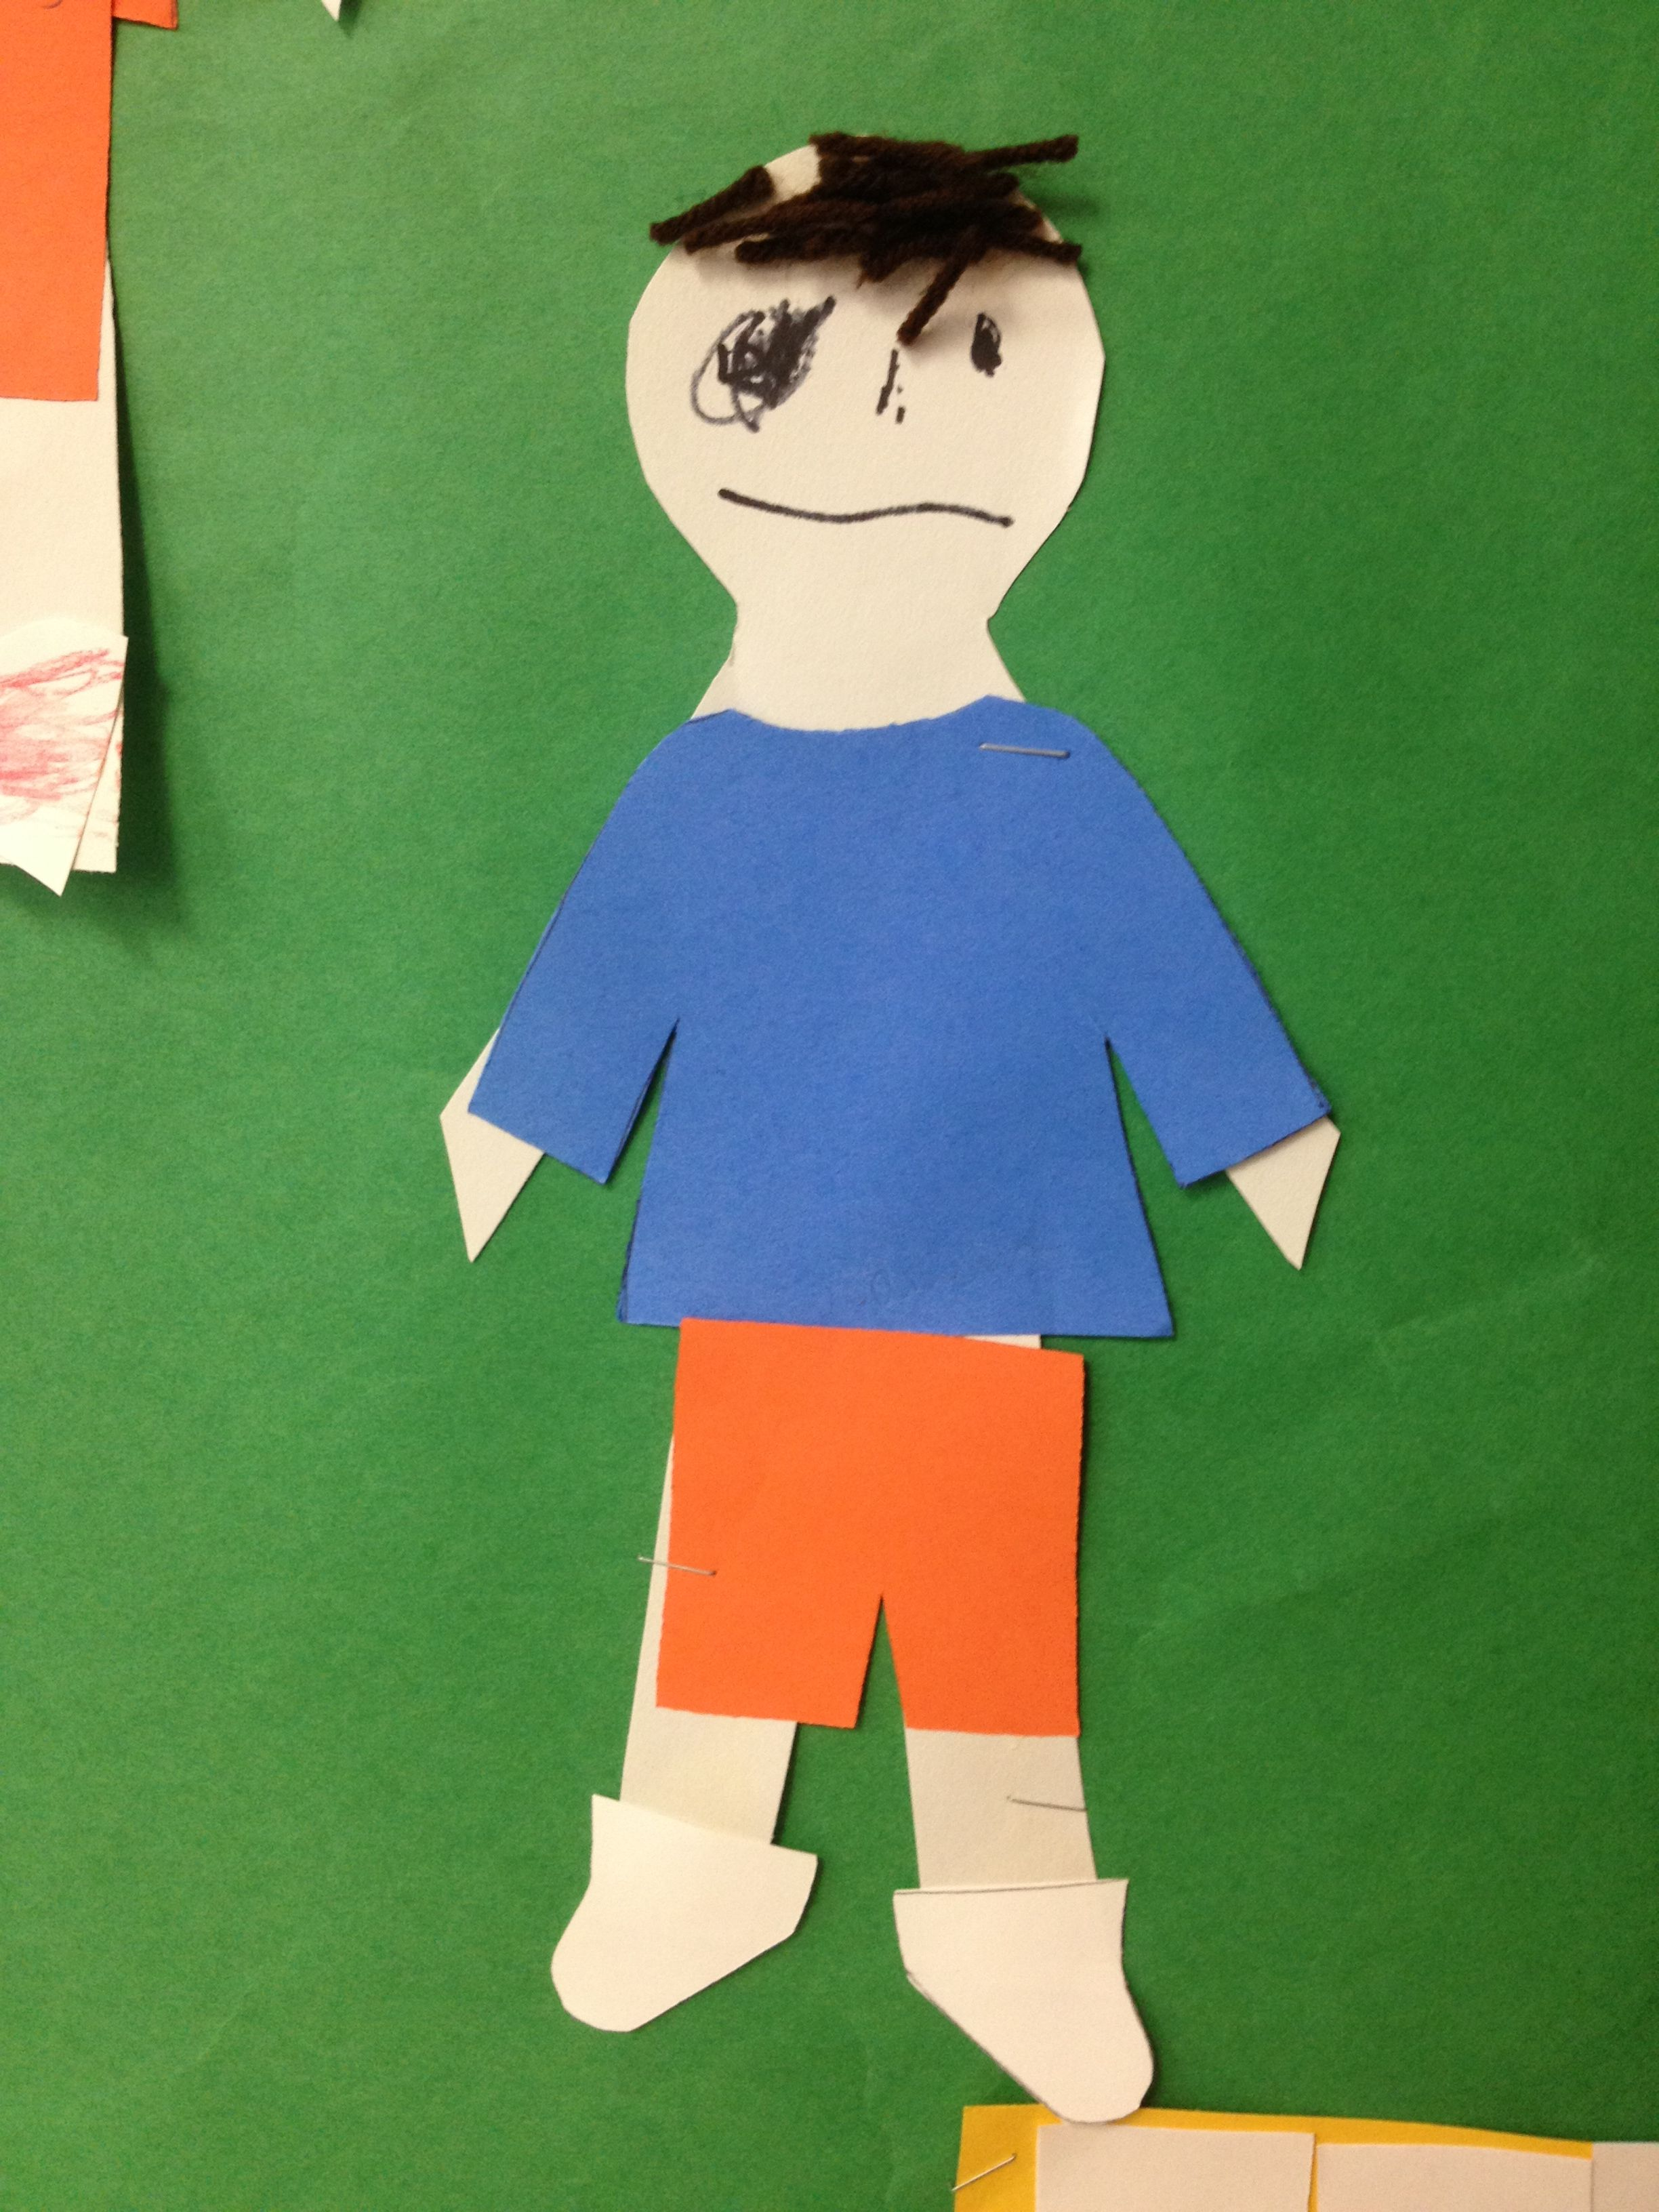 All About Me: Have Students Decorate A Paper Doll With Pan